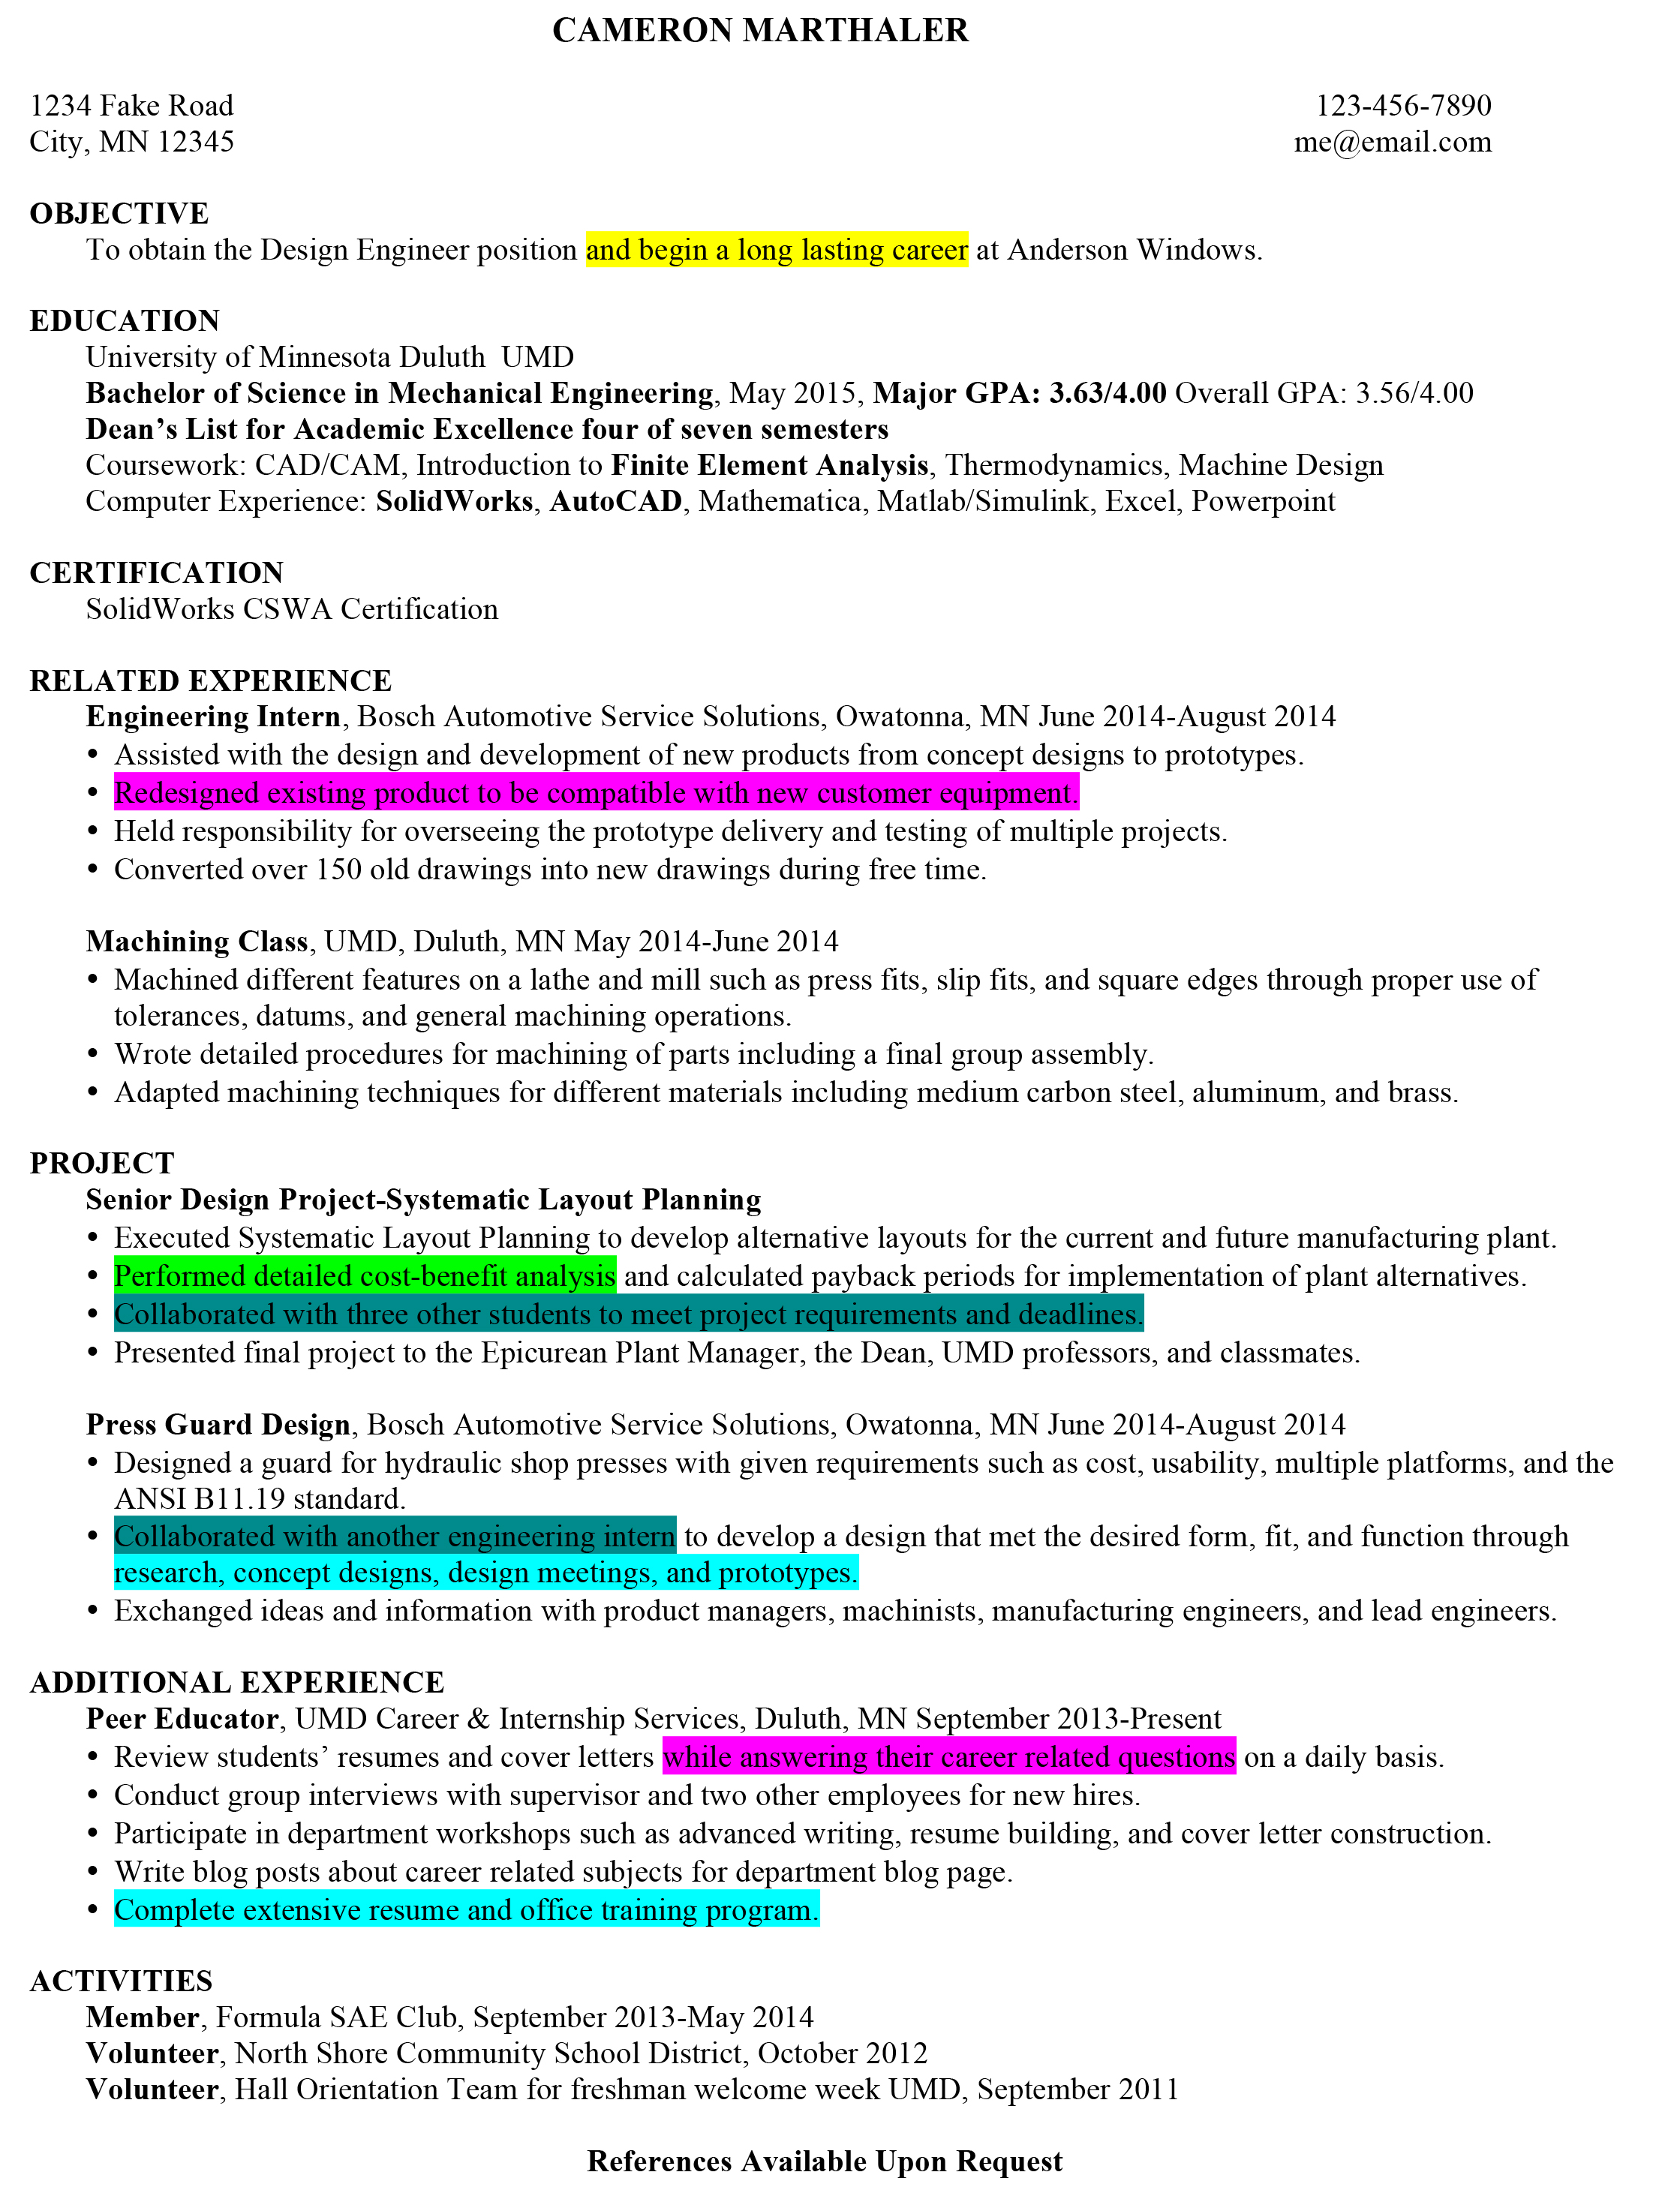 how to write key strengths in resume resume writing resume how to write key strengths in resume resume strengths examples key strengthsskills in a resume strengths